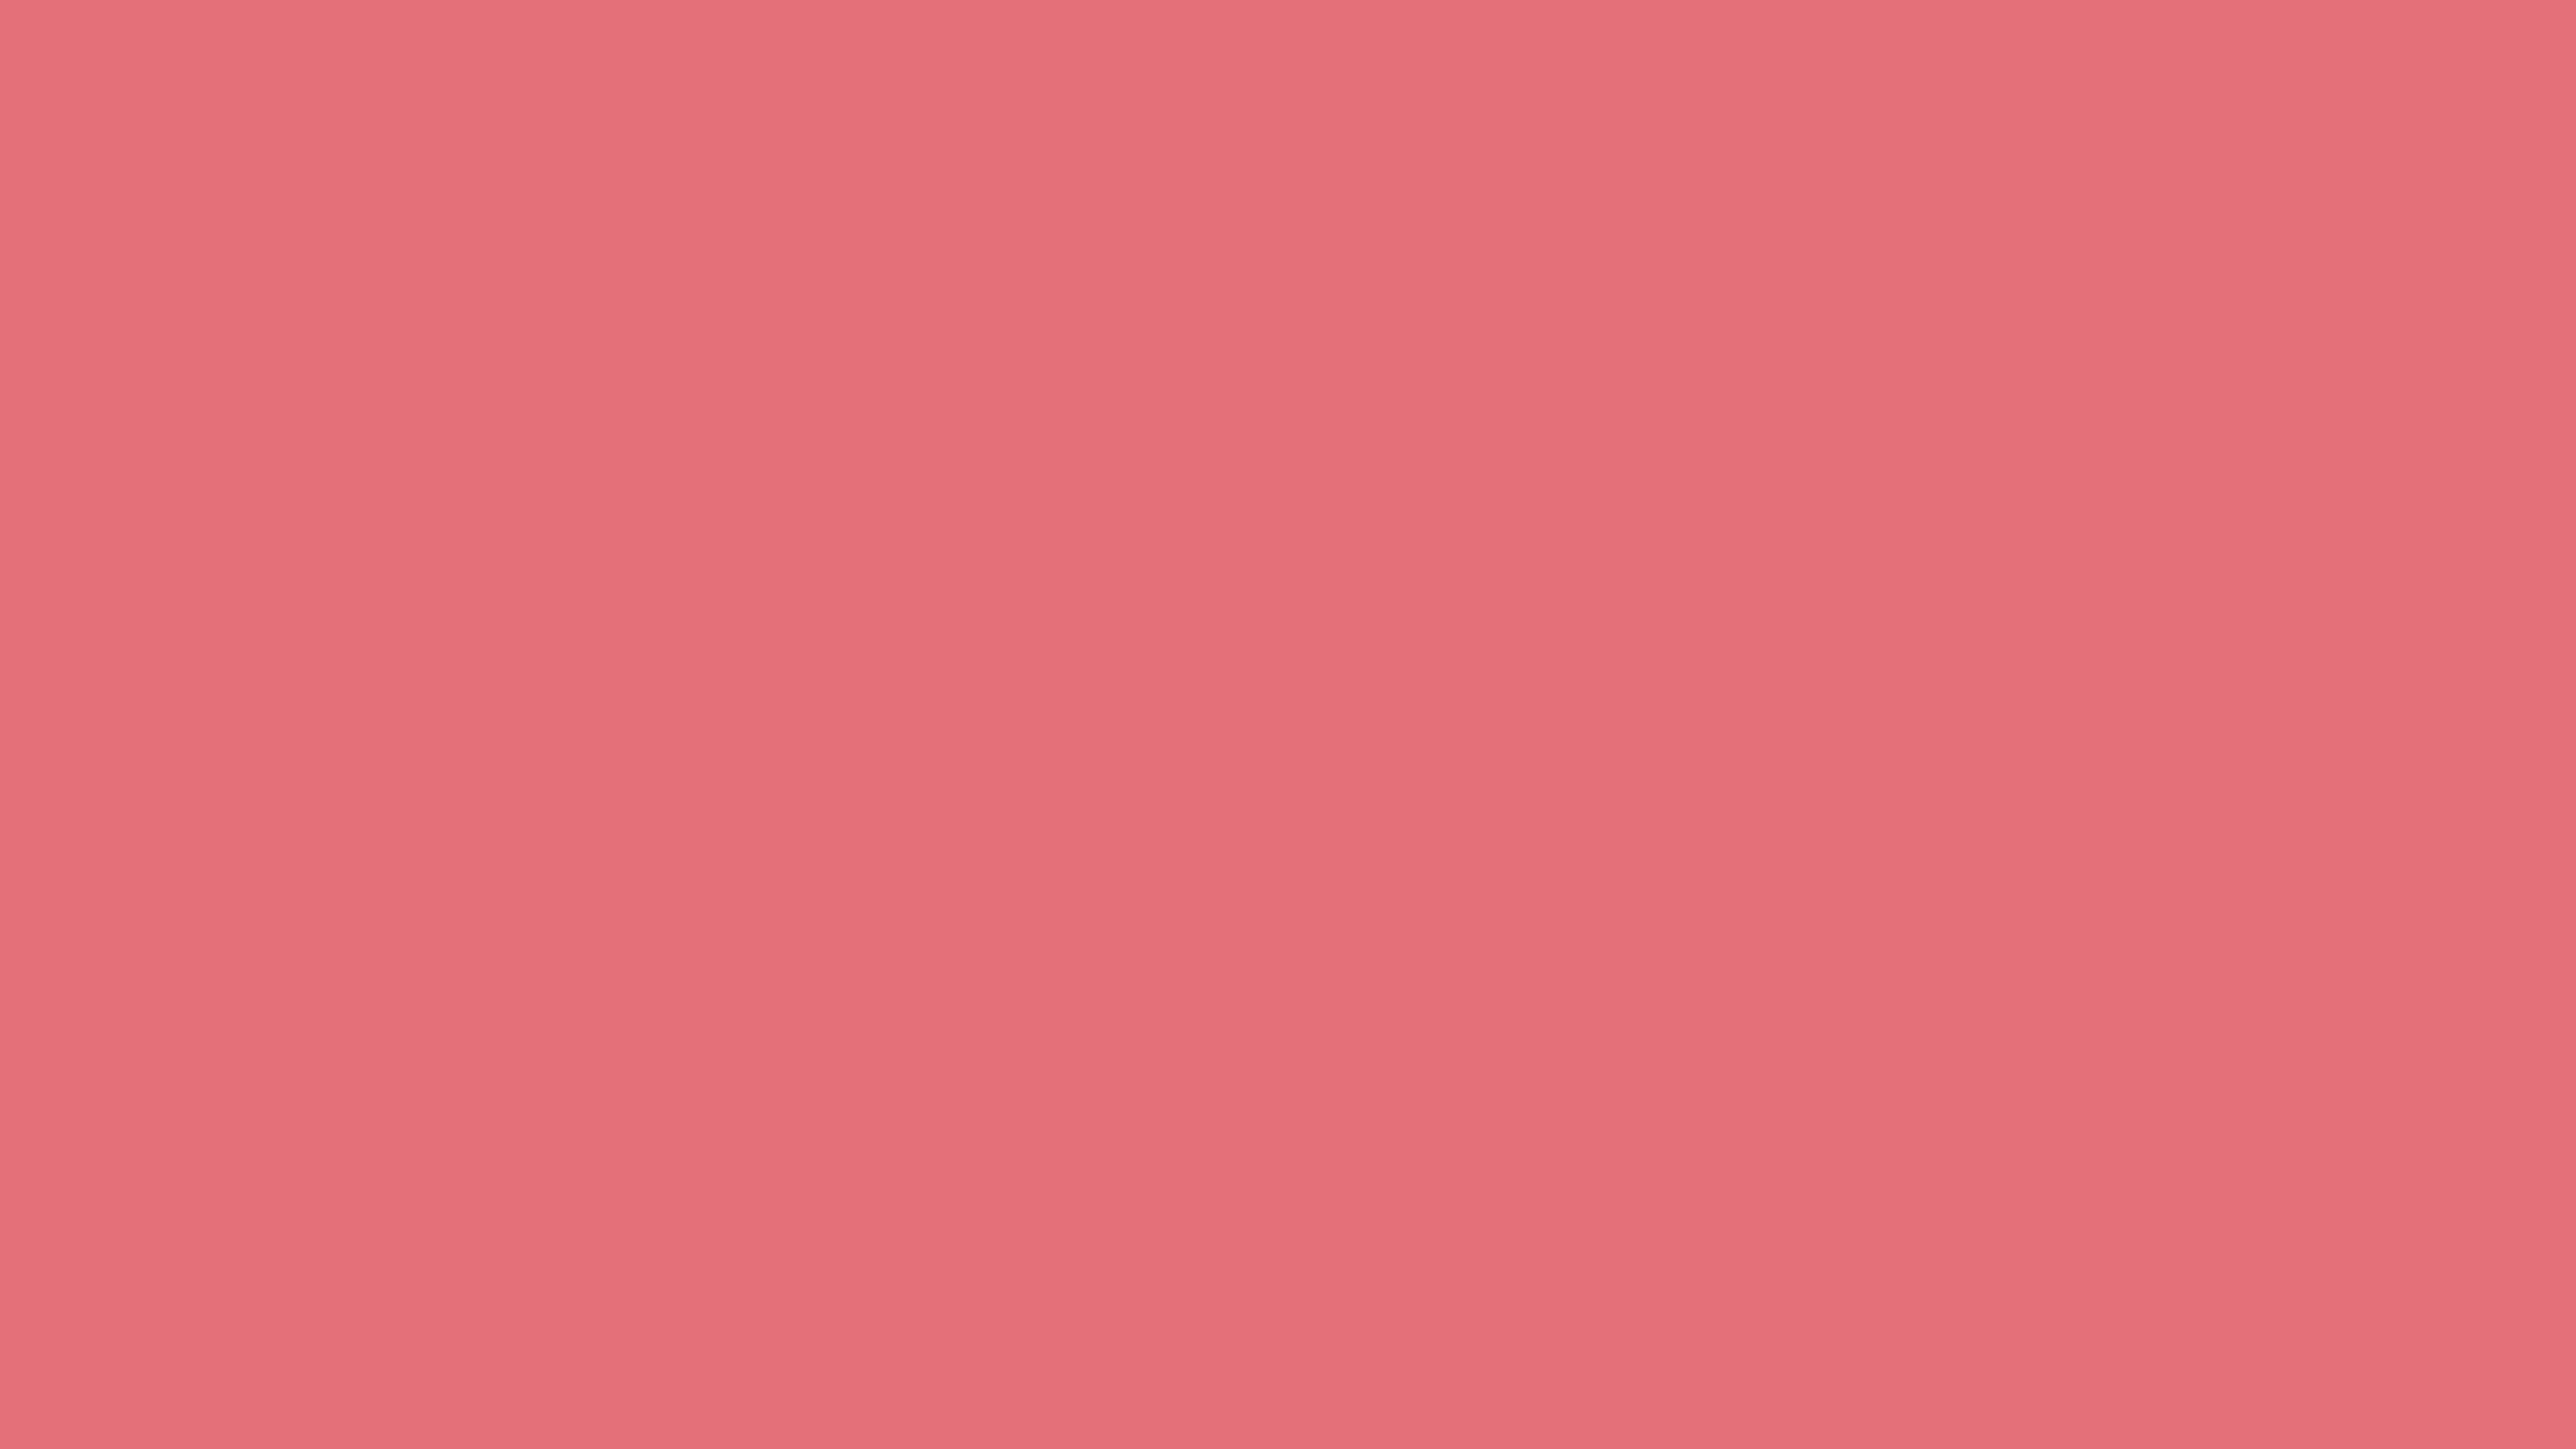 4096x2304 Candy Pink Solid Color Background